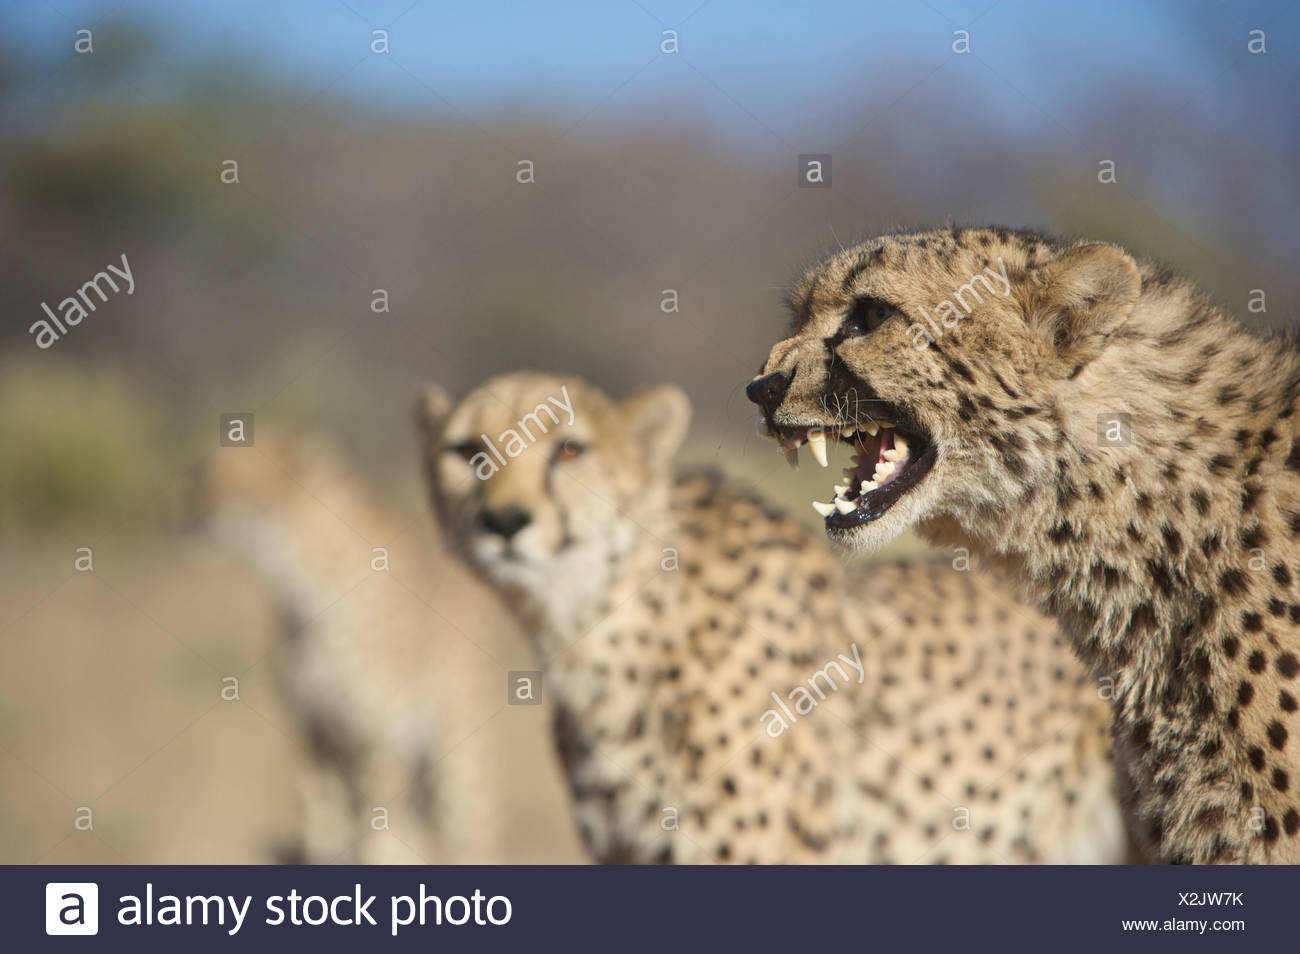 Cheetah (Acinonyx Jubatus) snarling with others in background, Namibia - Stock Image